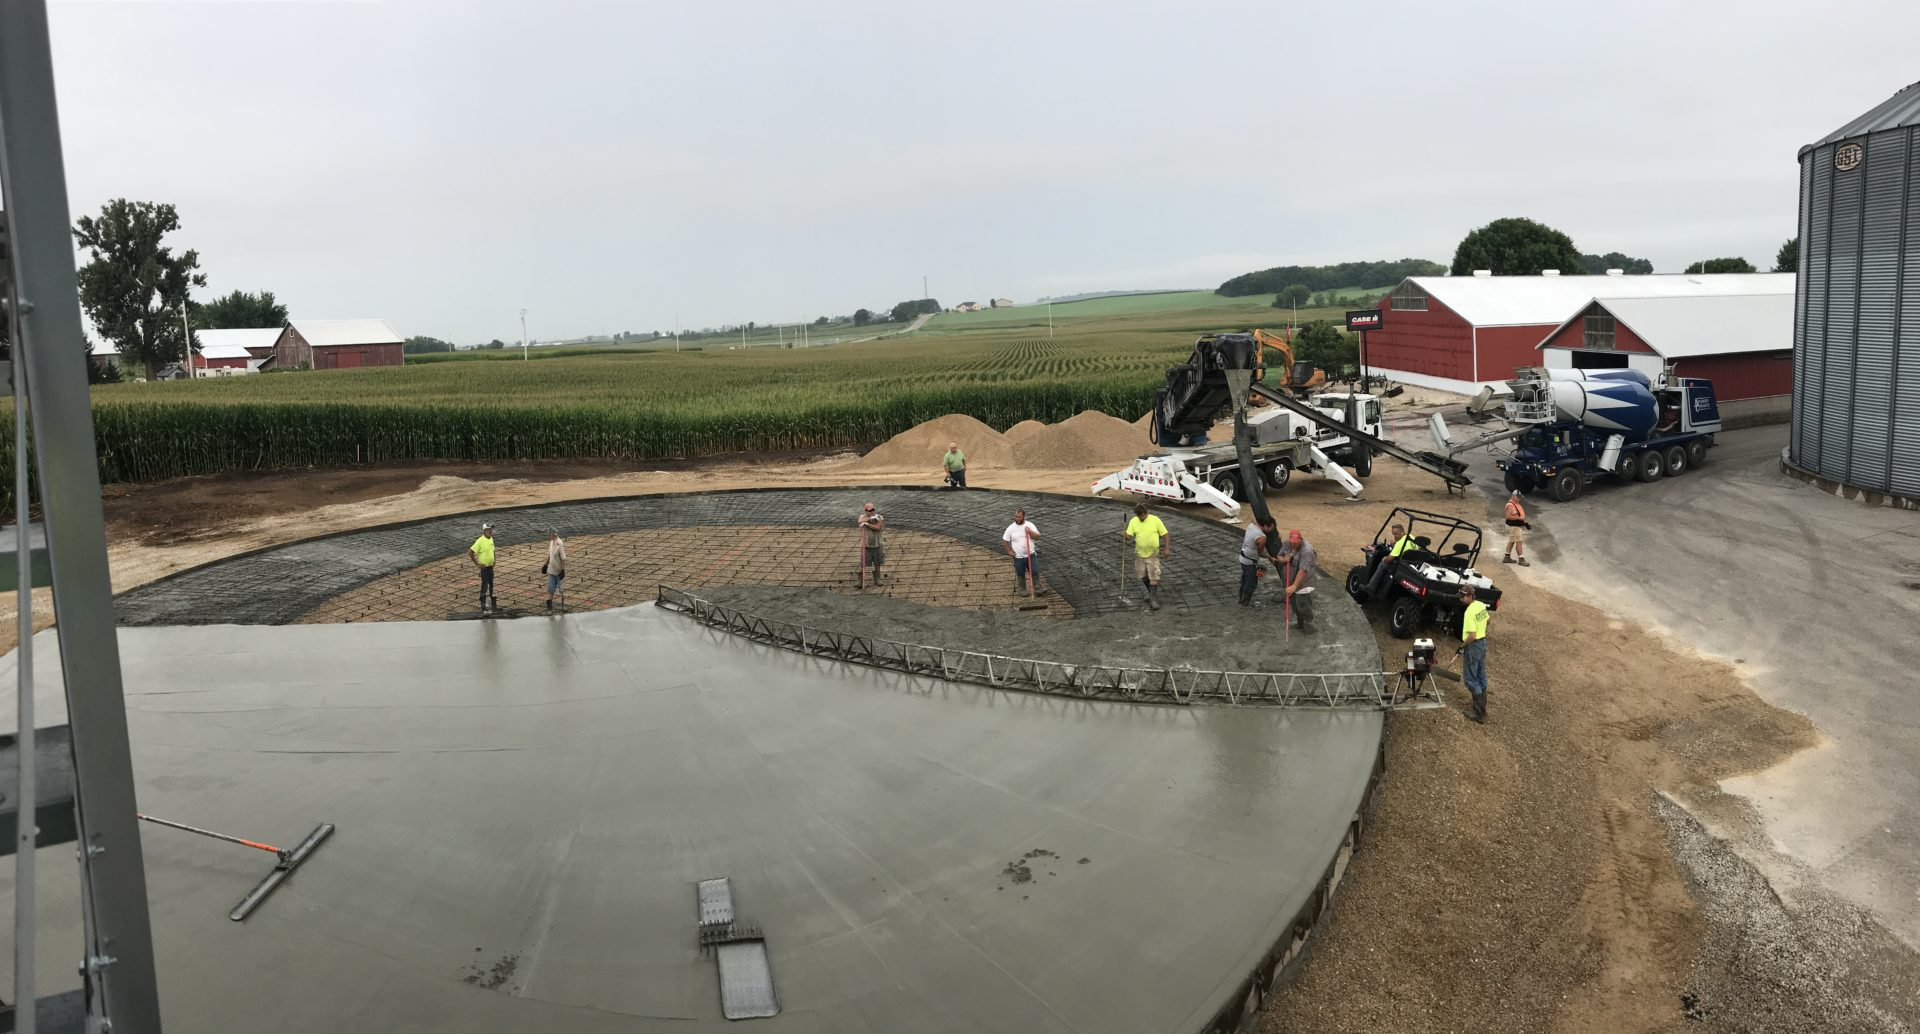 Workers creating a custom concrete design